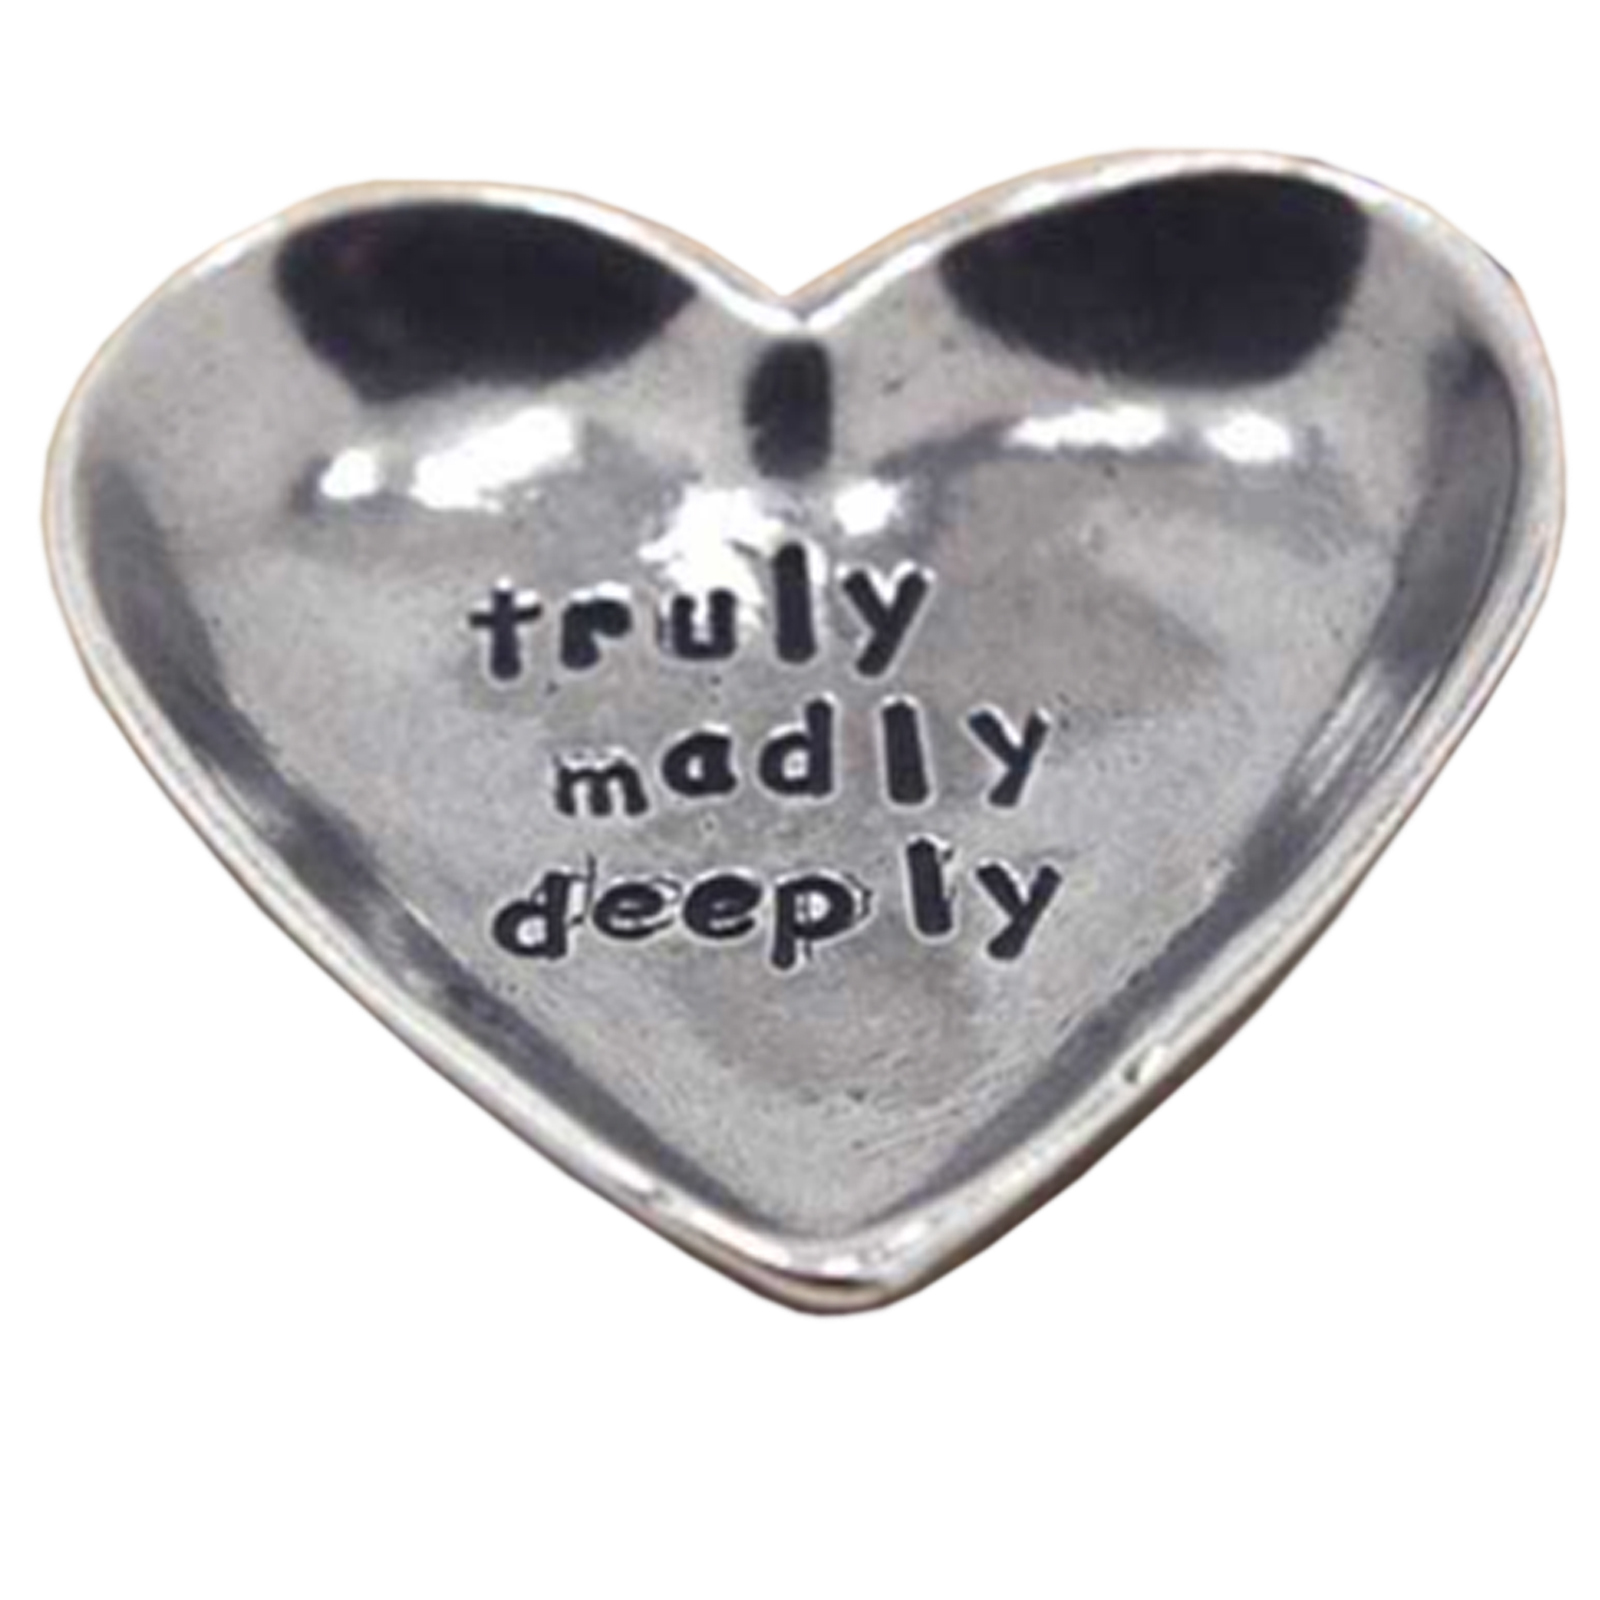 Truly Deeply Madly Sentiment Heart Token by The English Pewter Company